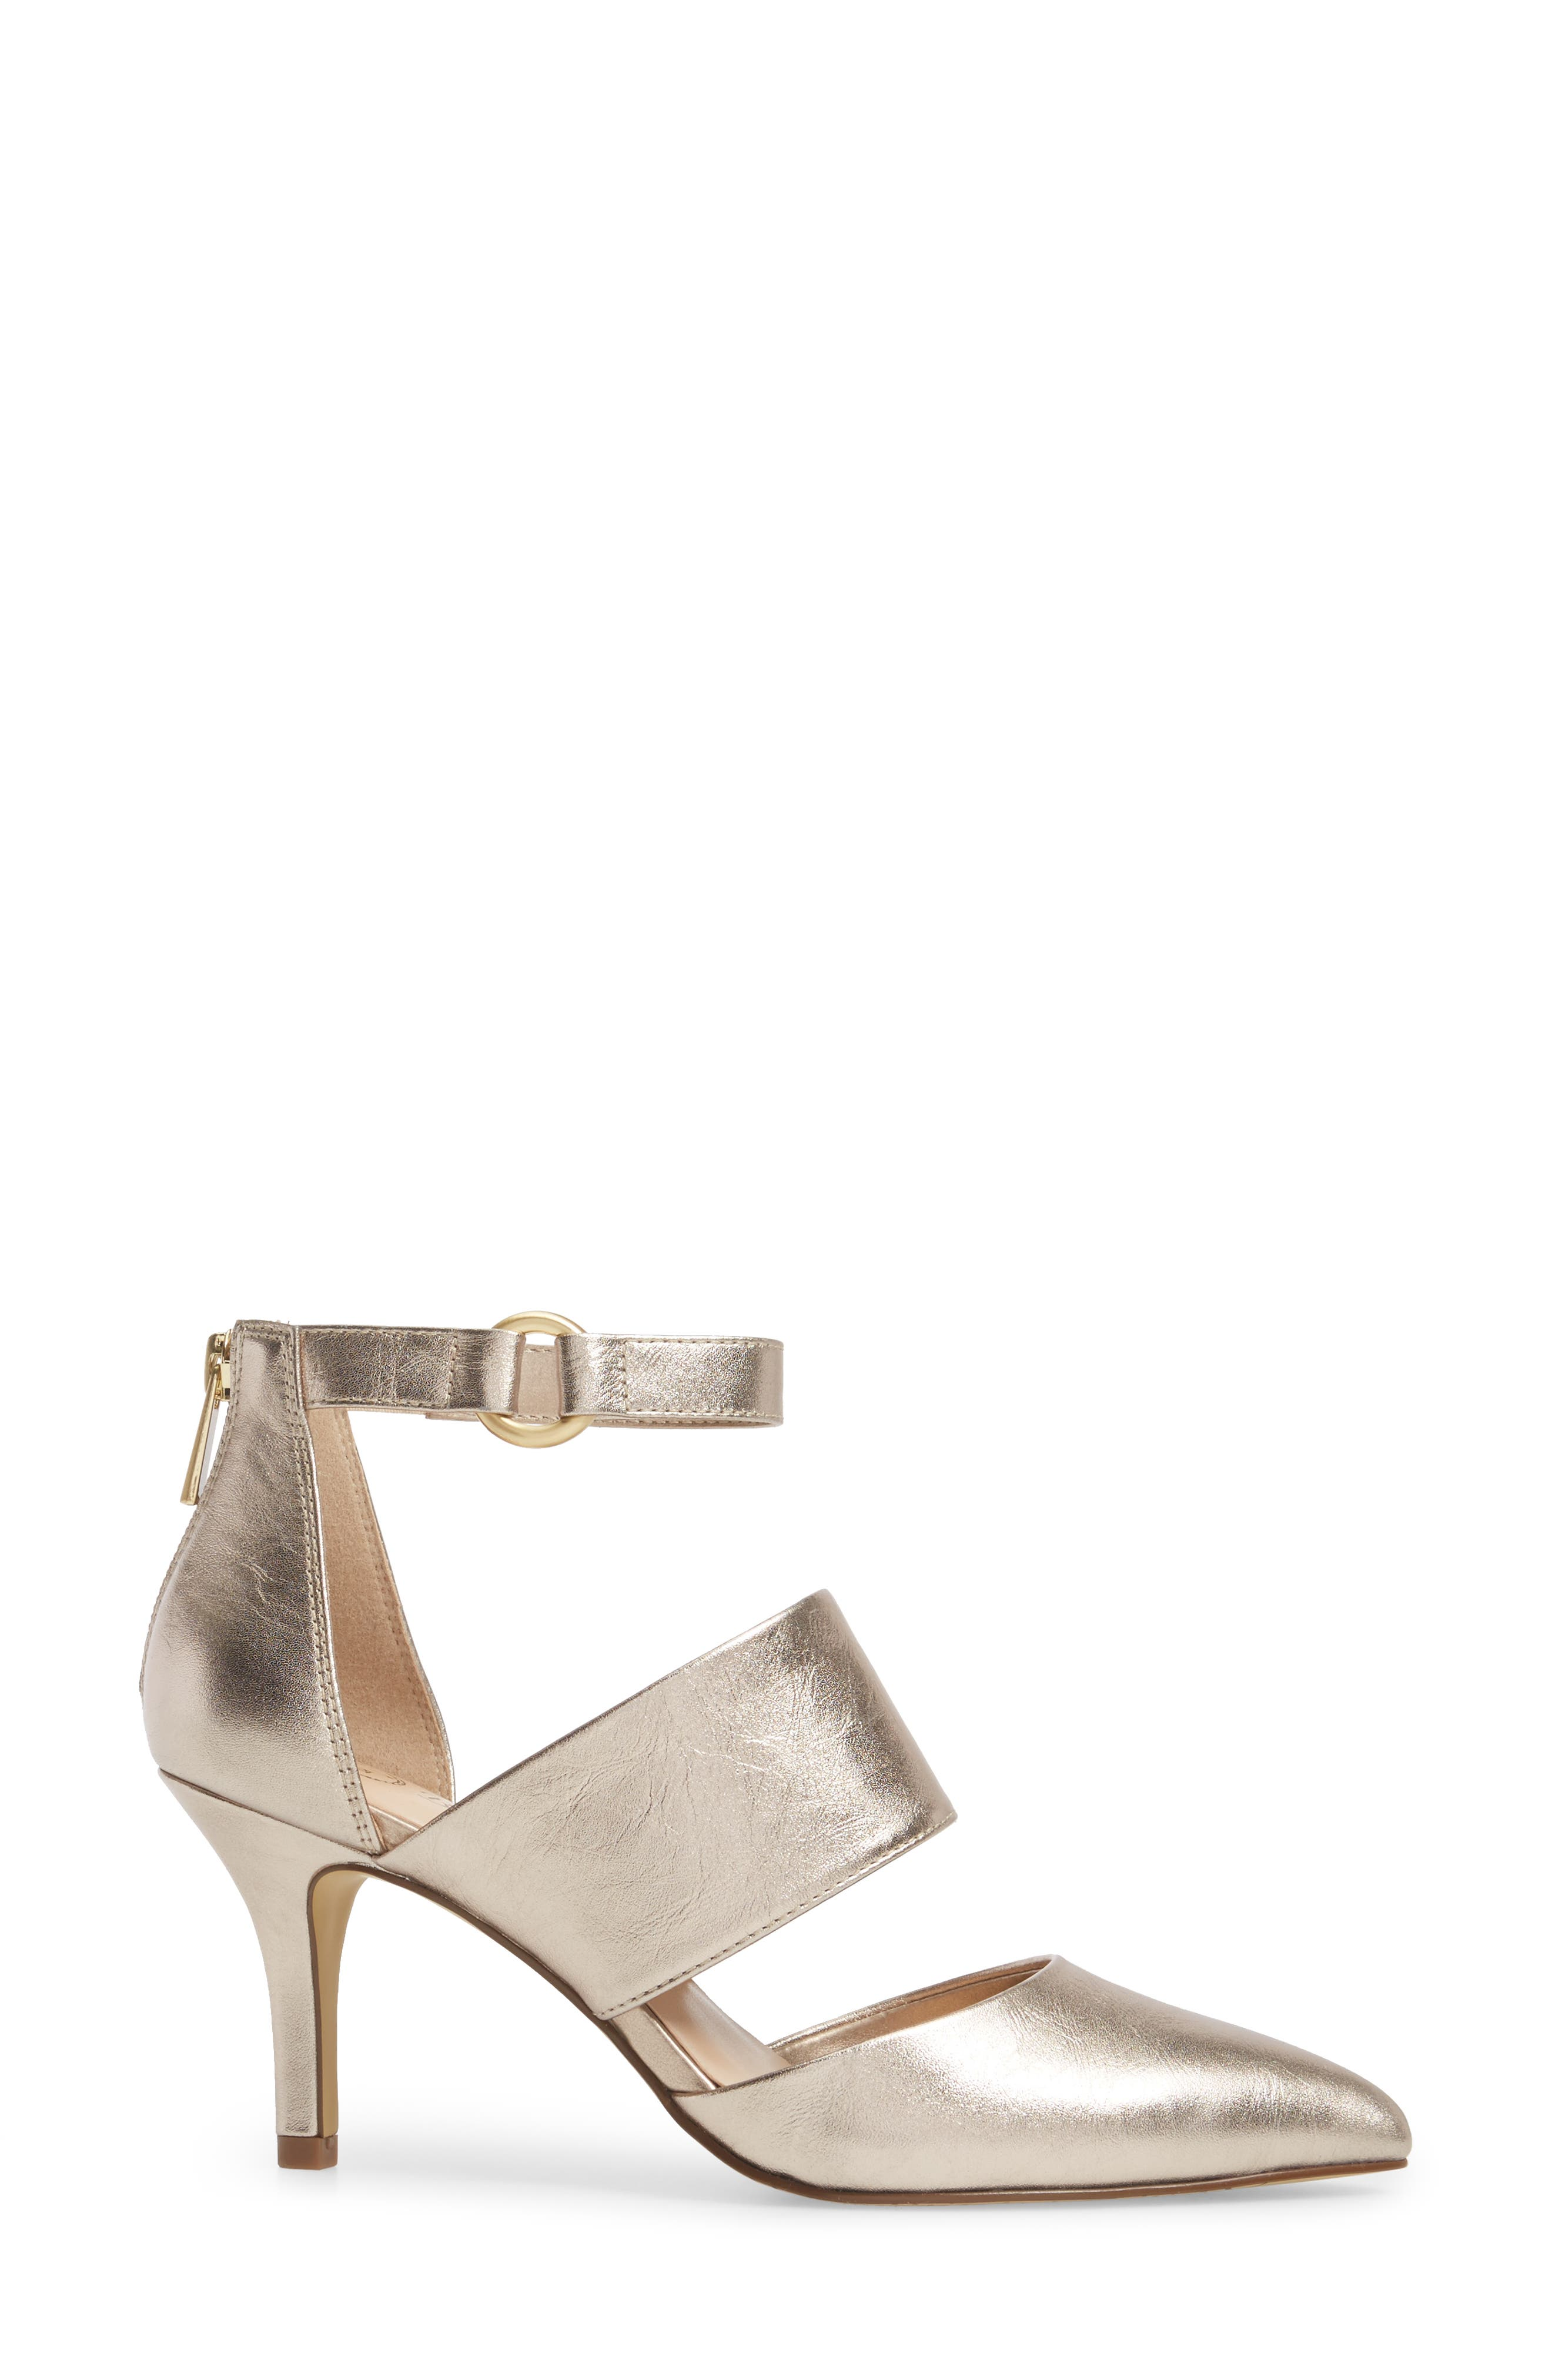 Diana Pump,                             Alternate thumbnail 3, color,                             Champagne Leather